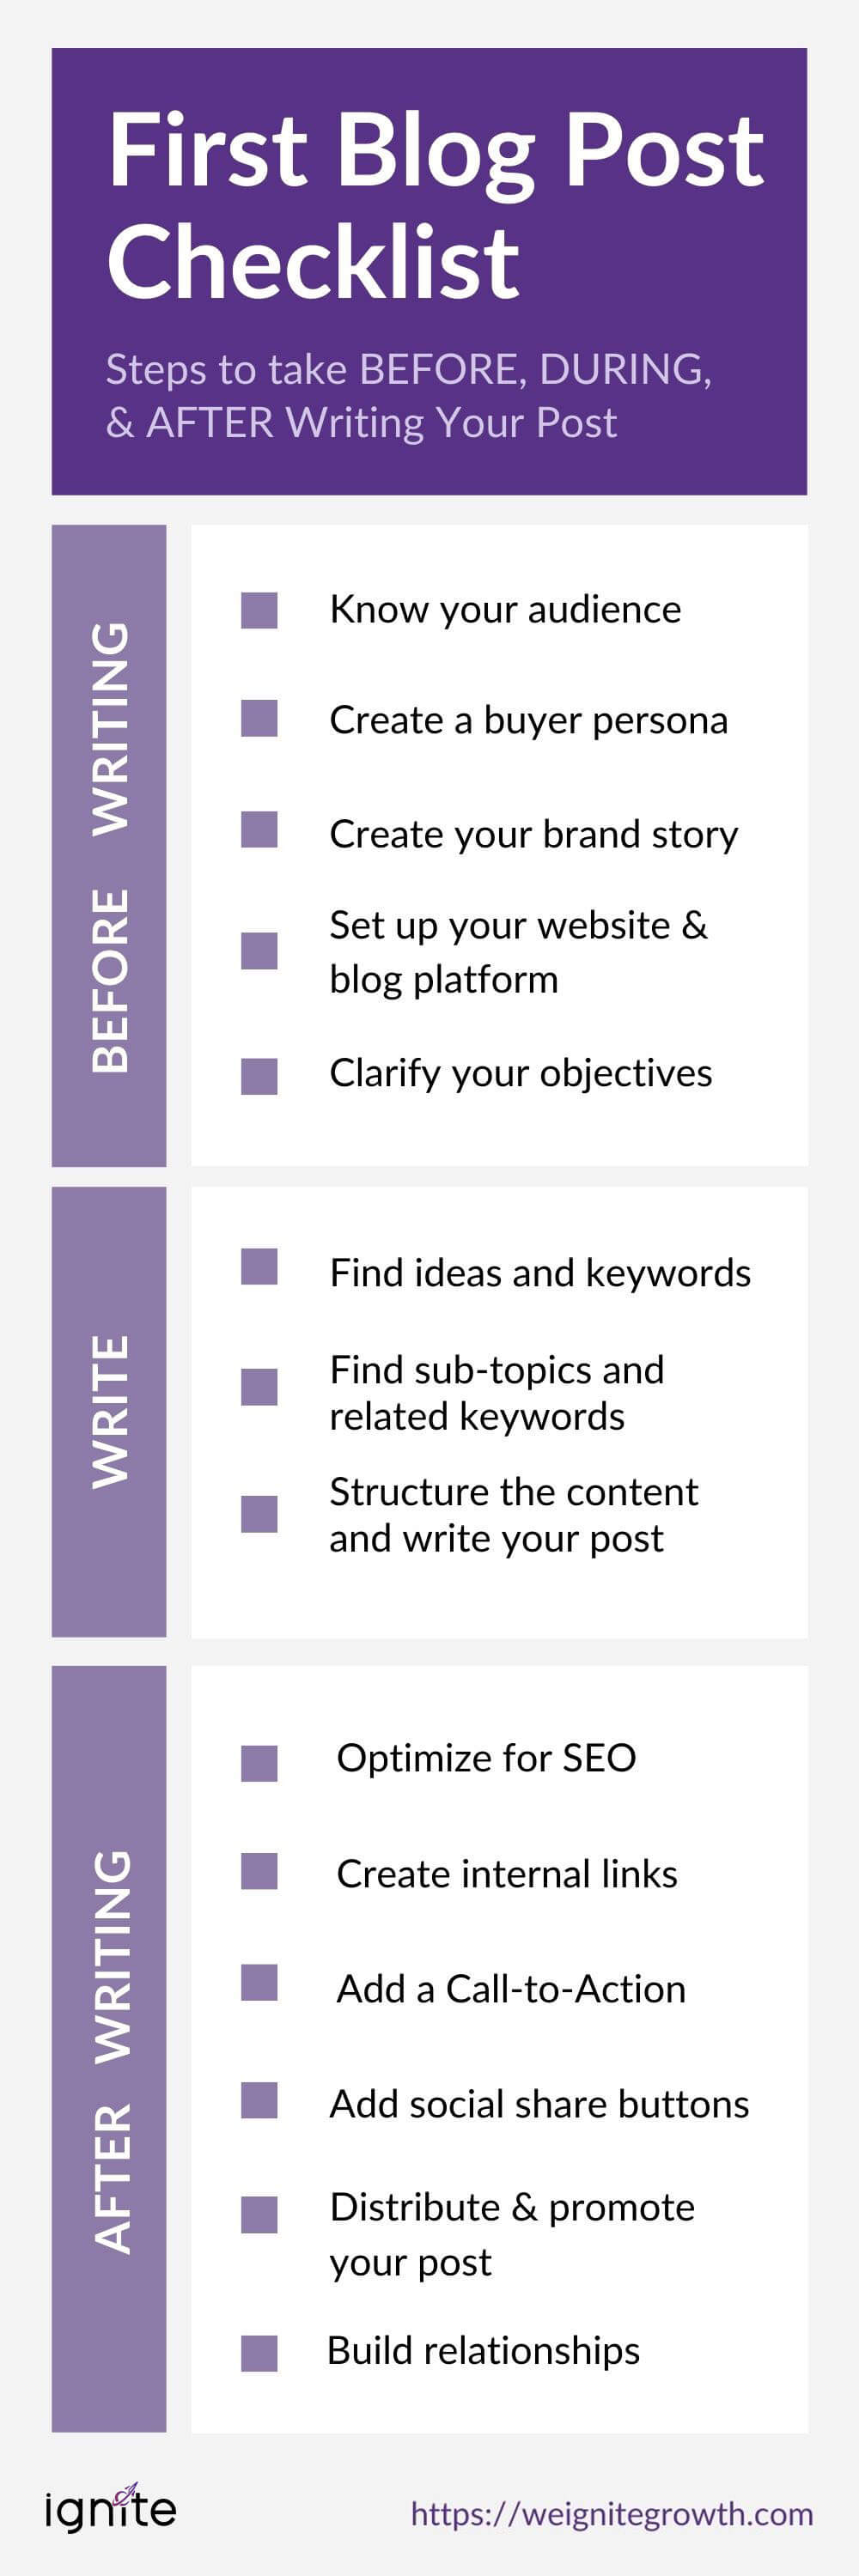 Blog Post Checklist_How to Write Your First Blog Post.jpg